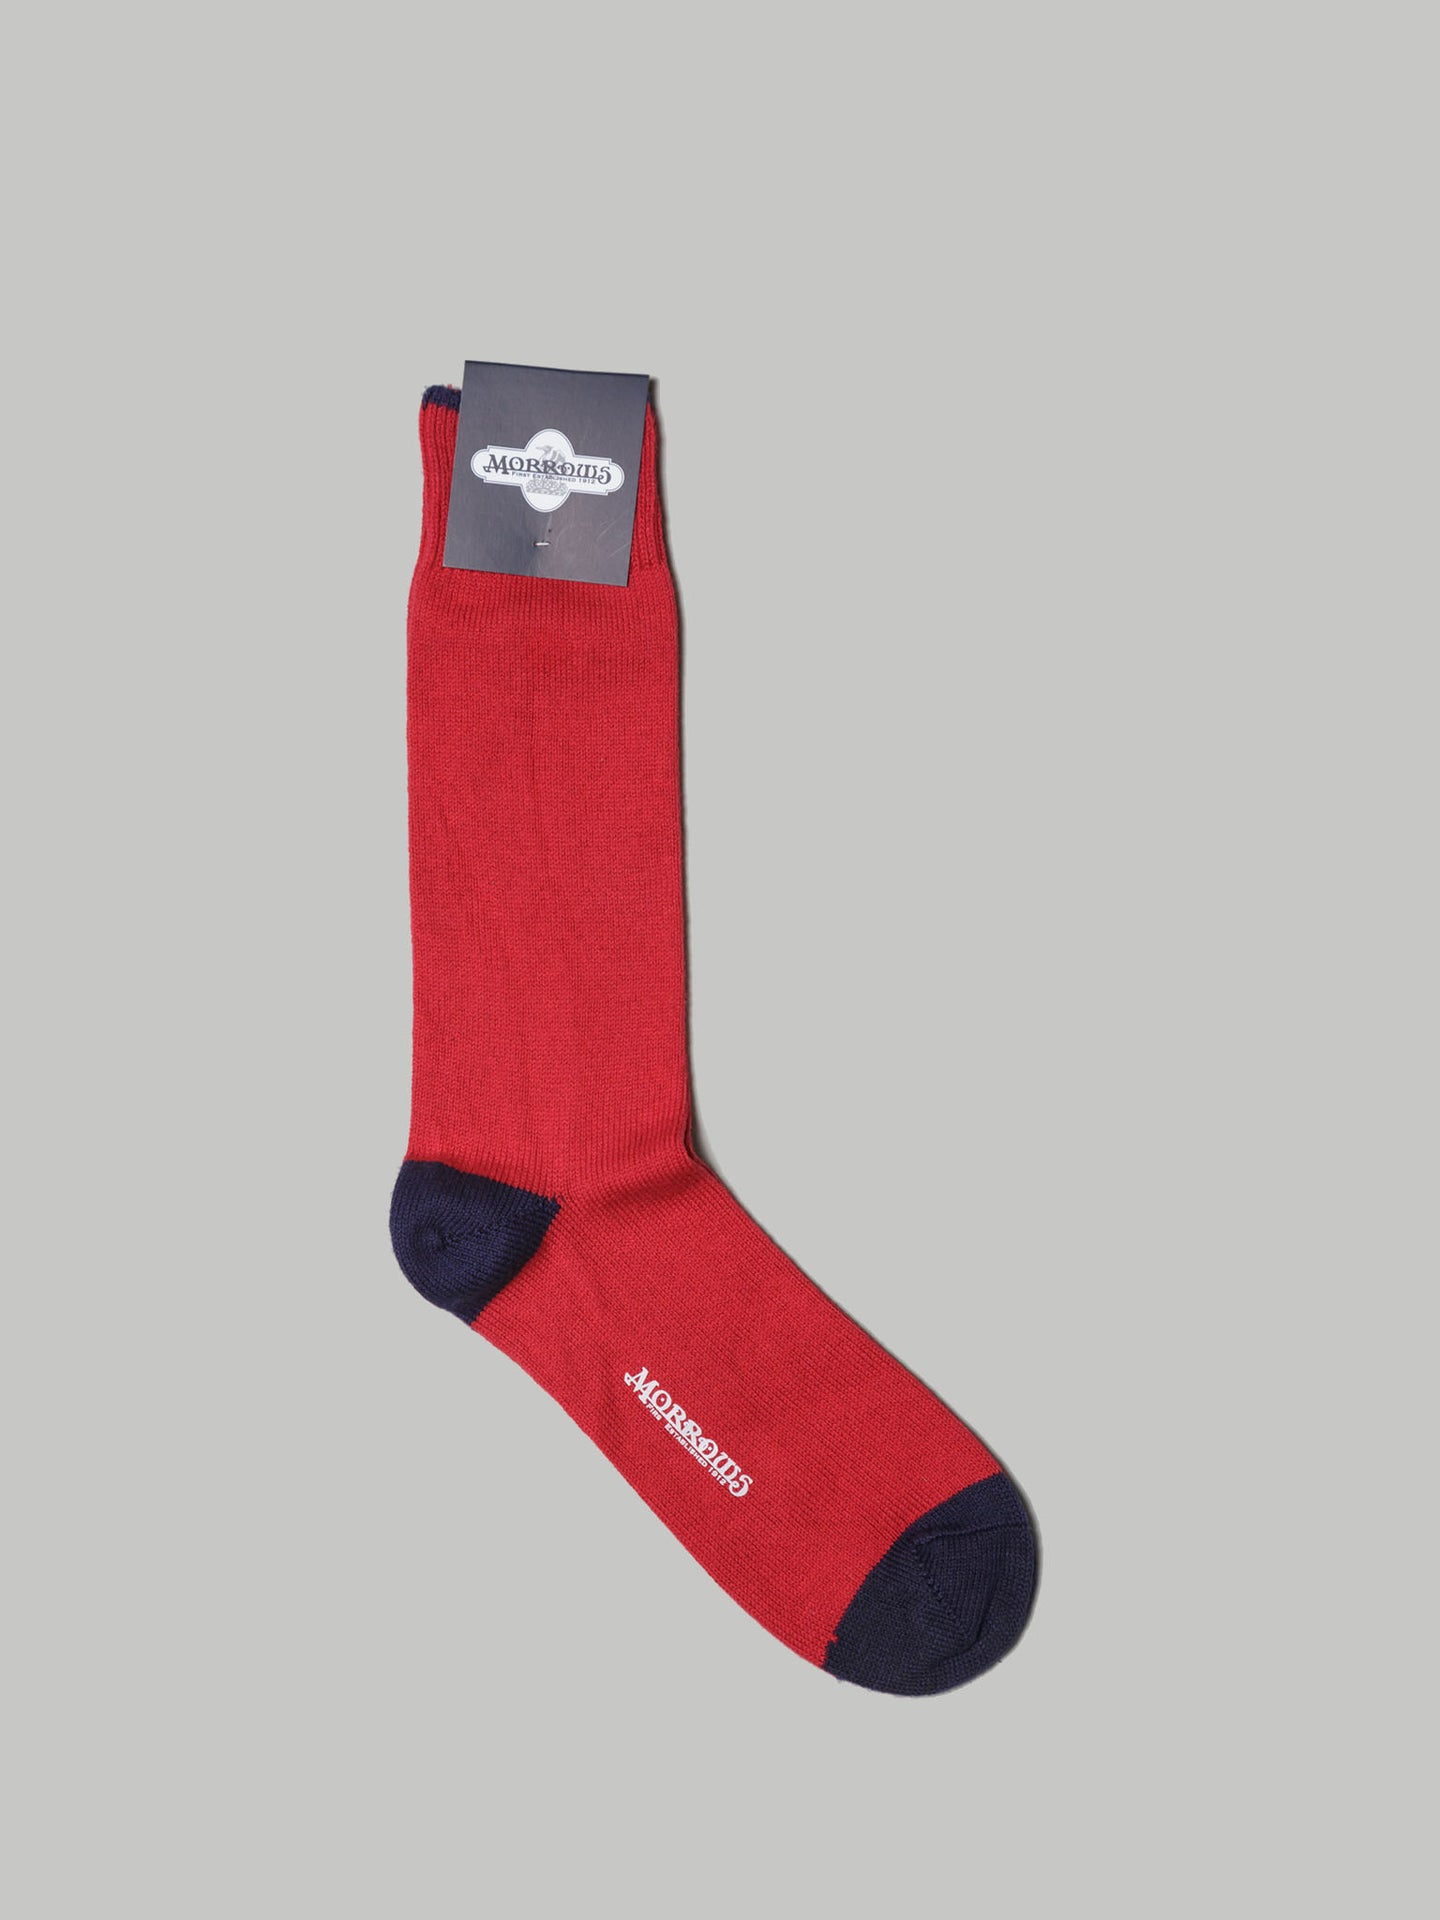 Morrows Roberts Heel Toe Cap Sock (Red Currant, Marine) - Union 22